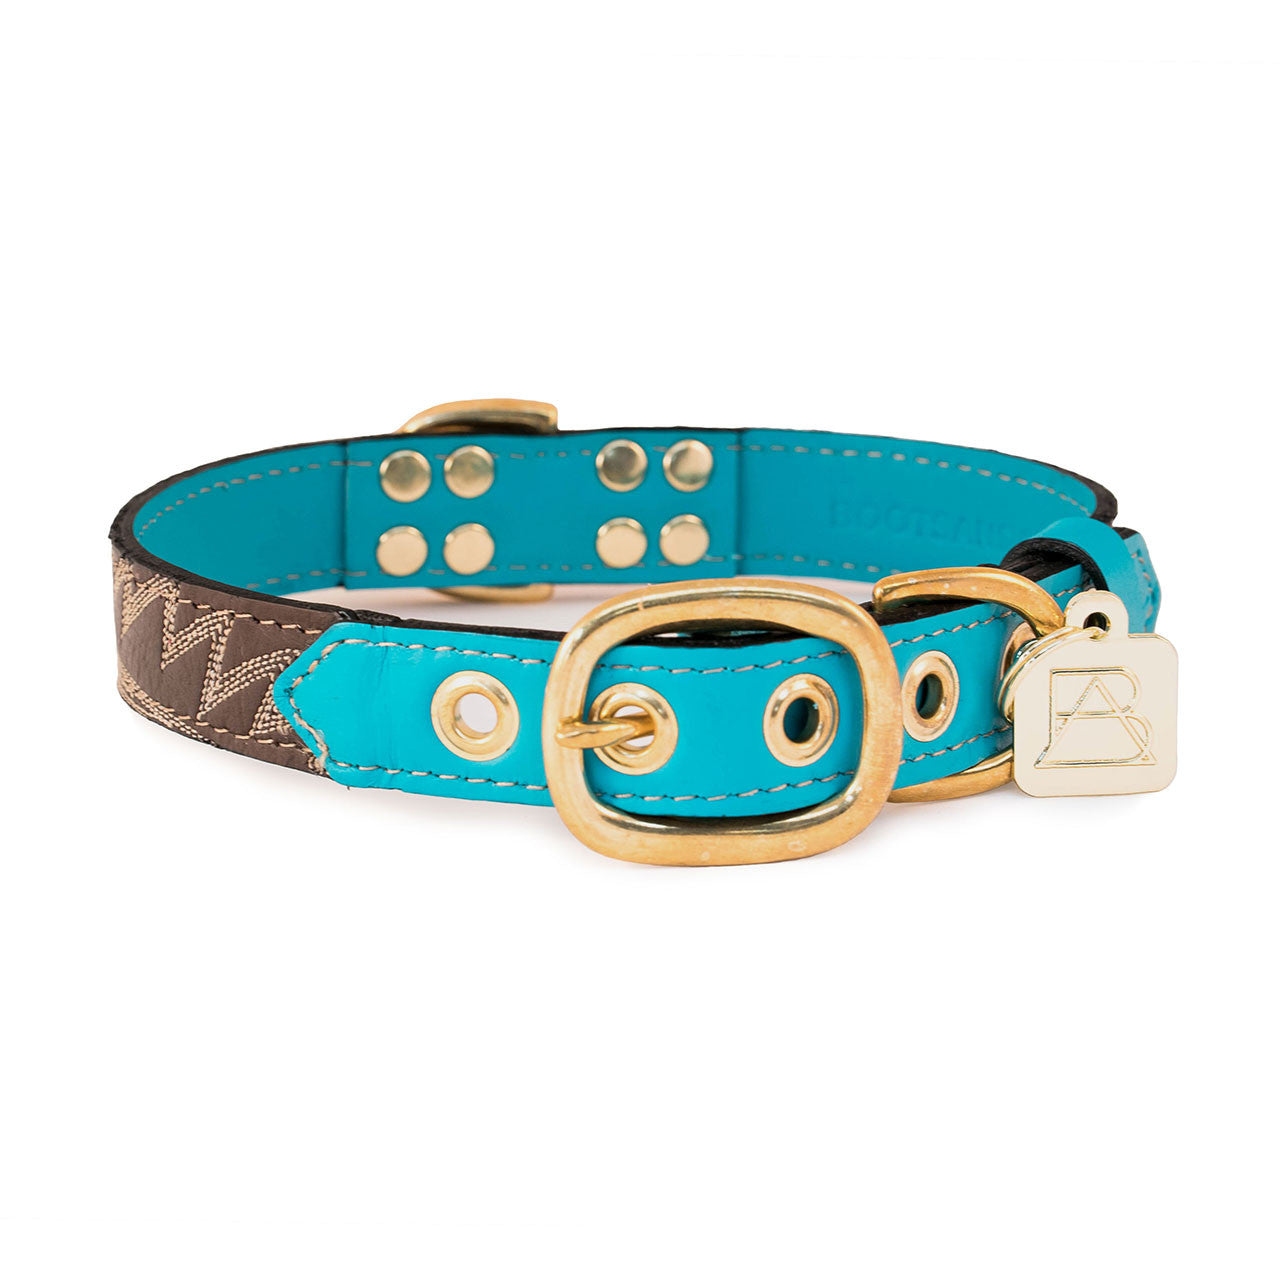 Turquoise Dog Collar with Chocolate Leather + Ivory Stitching